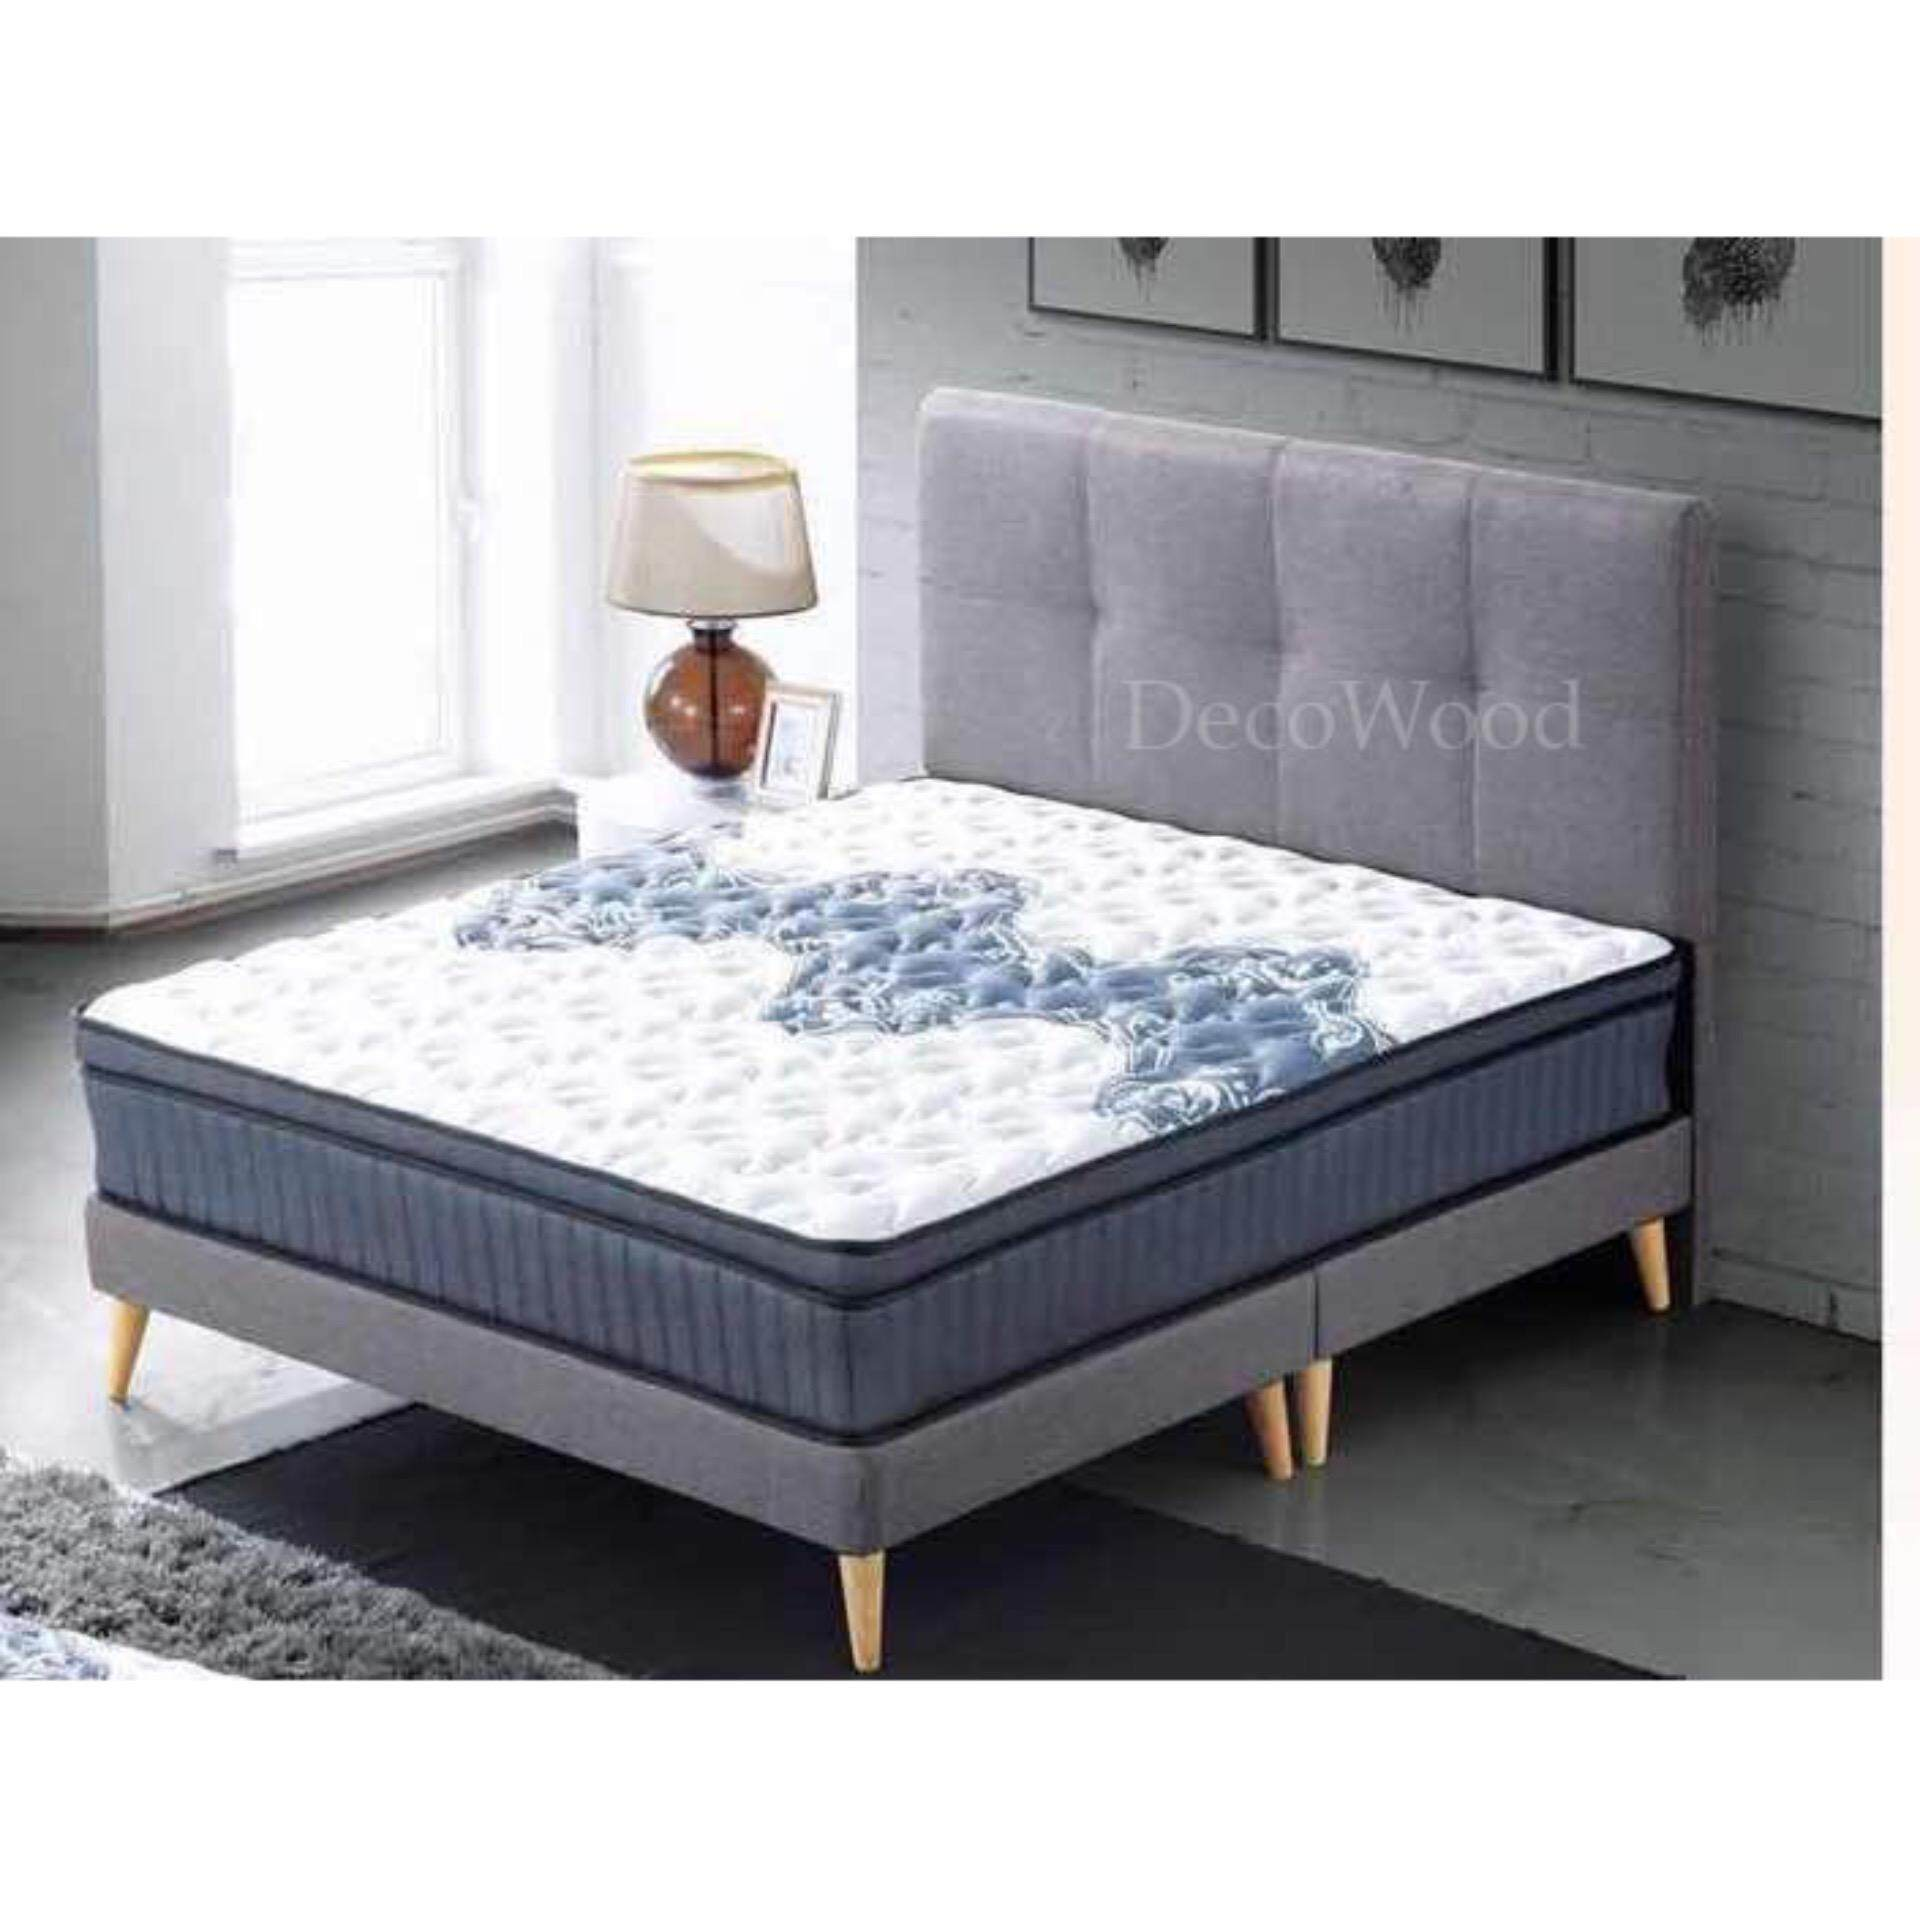 Solid Fabric Queen Size Divan Bed With 11 Inches Mattress Qu...